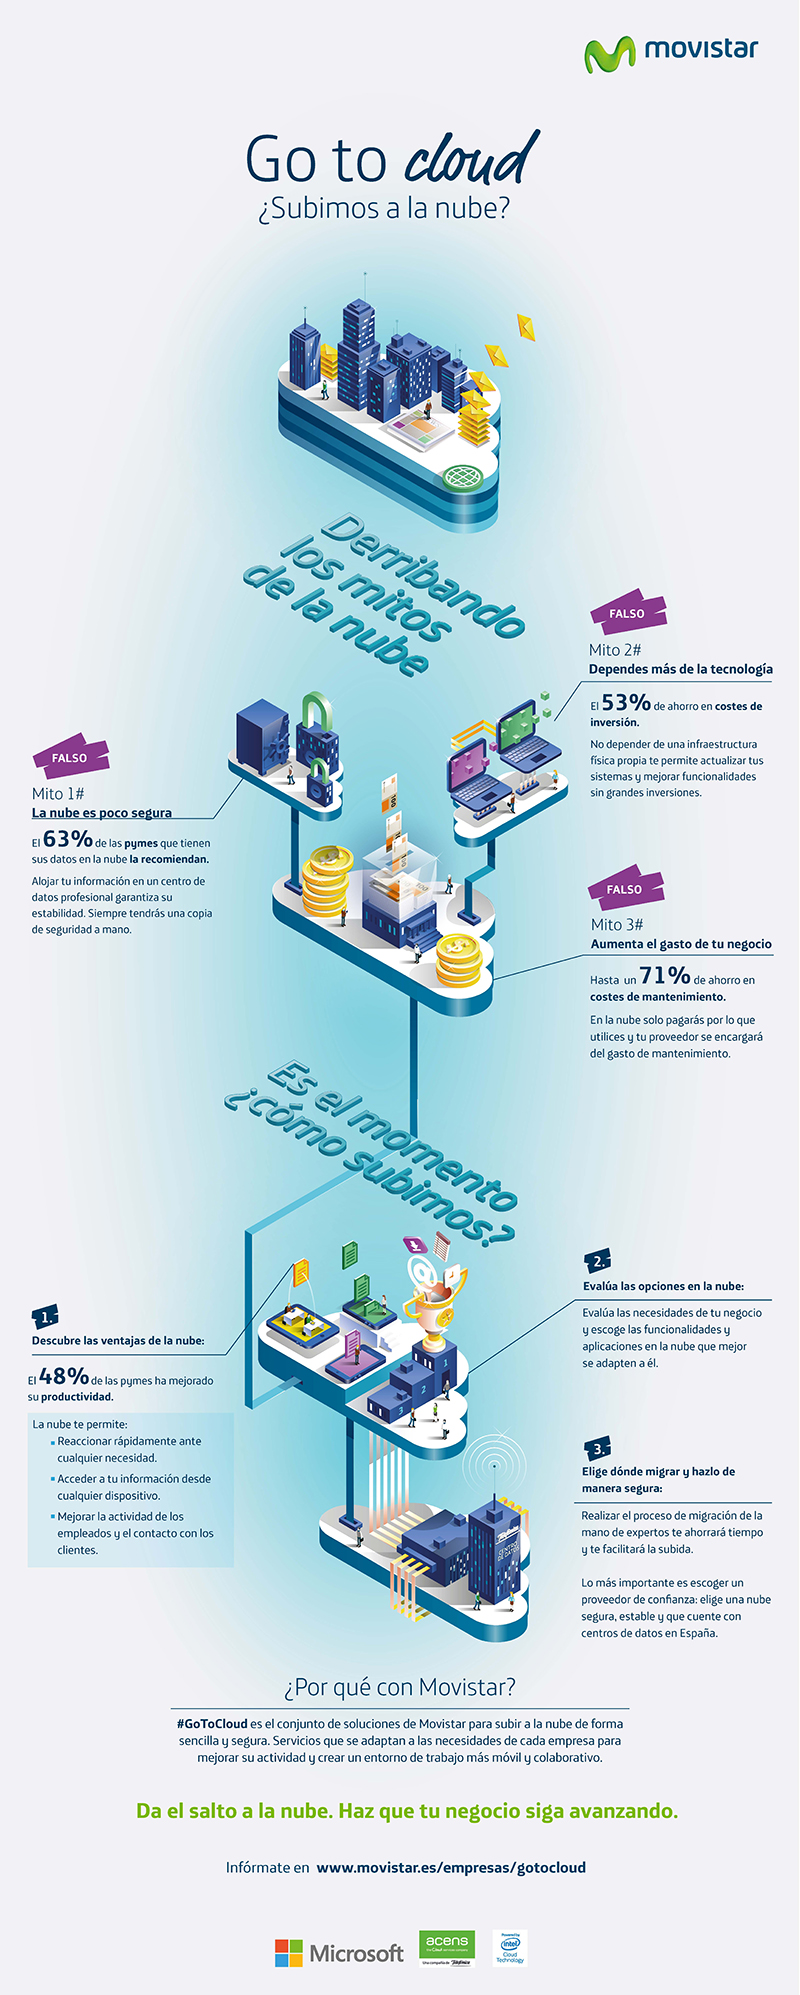 Falsos mitos de la Nube #infografia #infographic #cloudcomputing